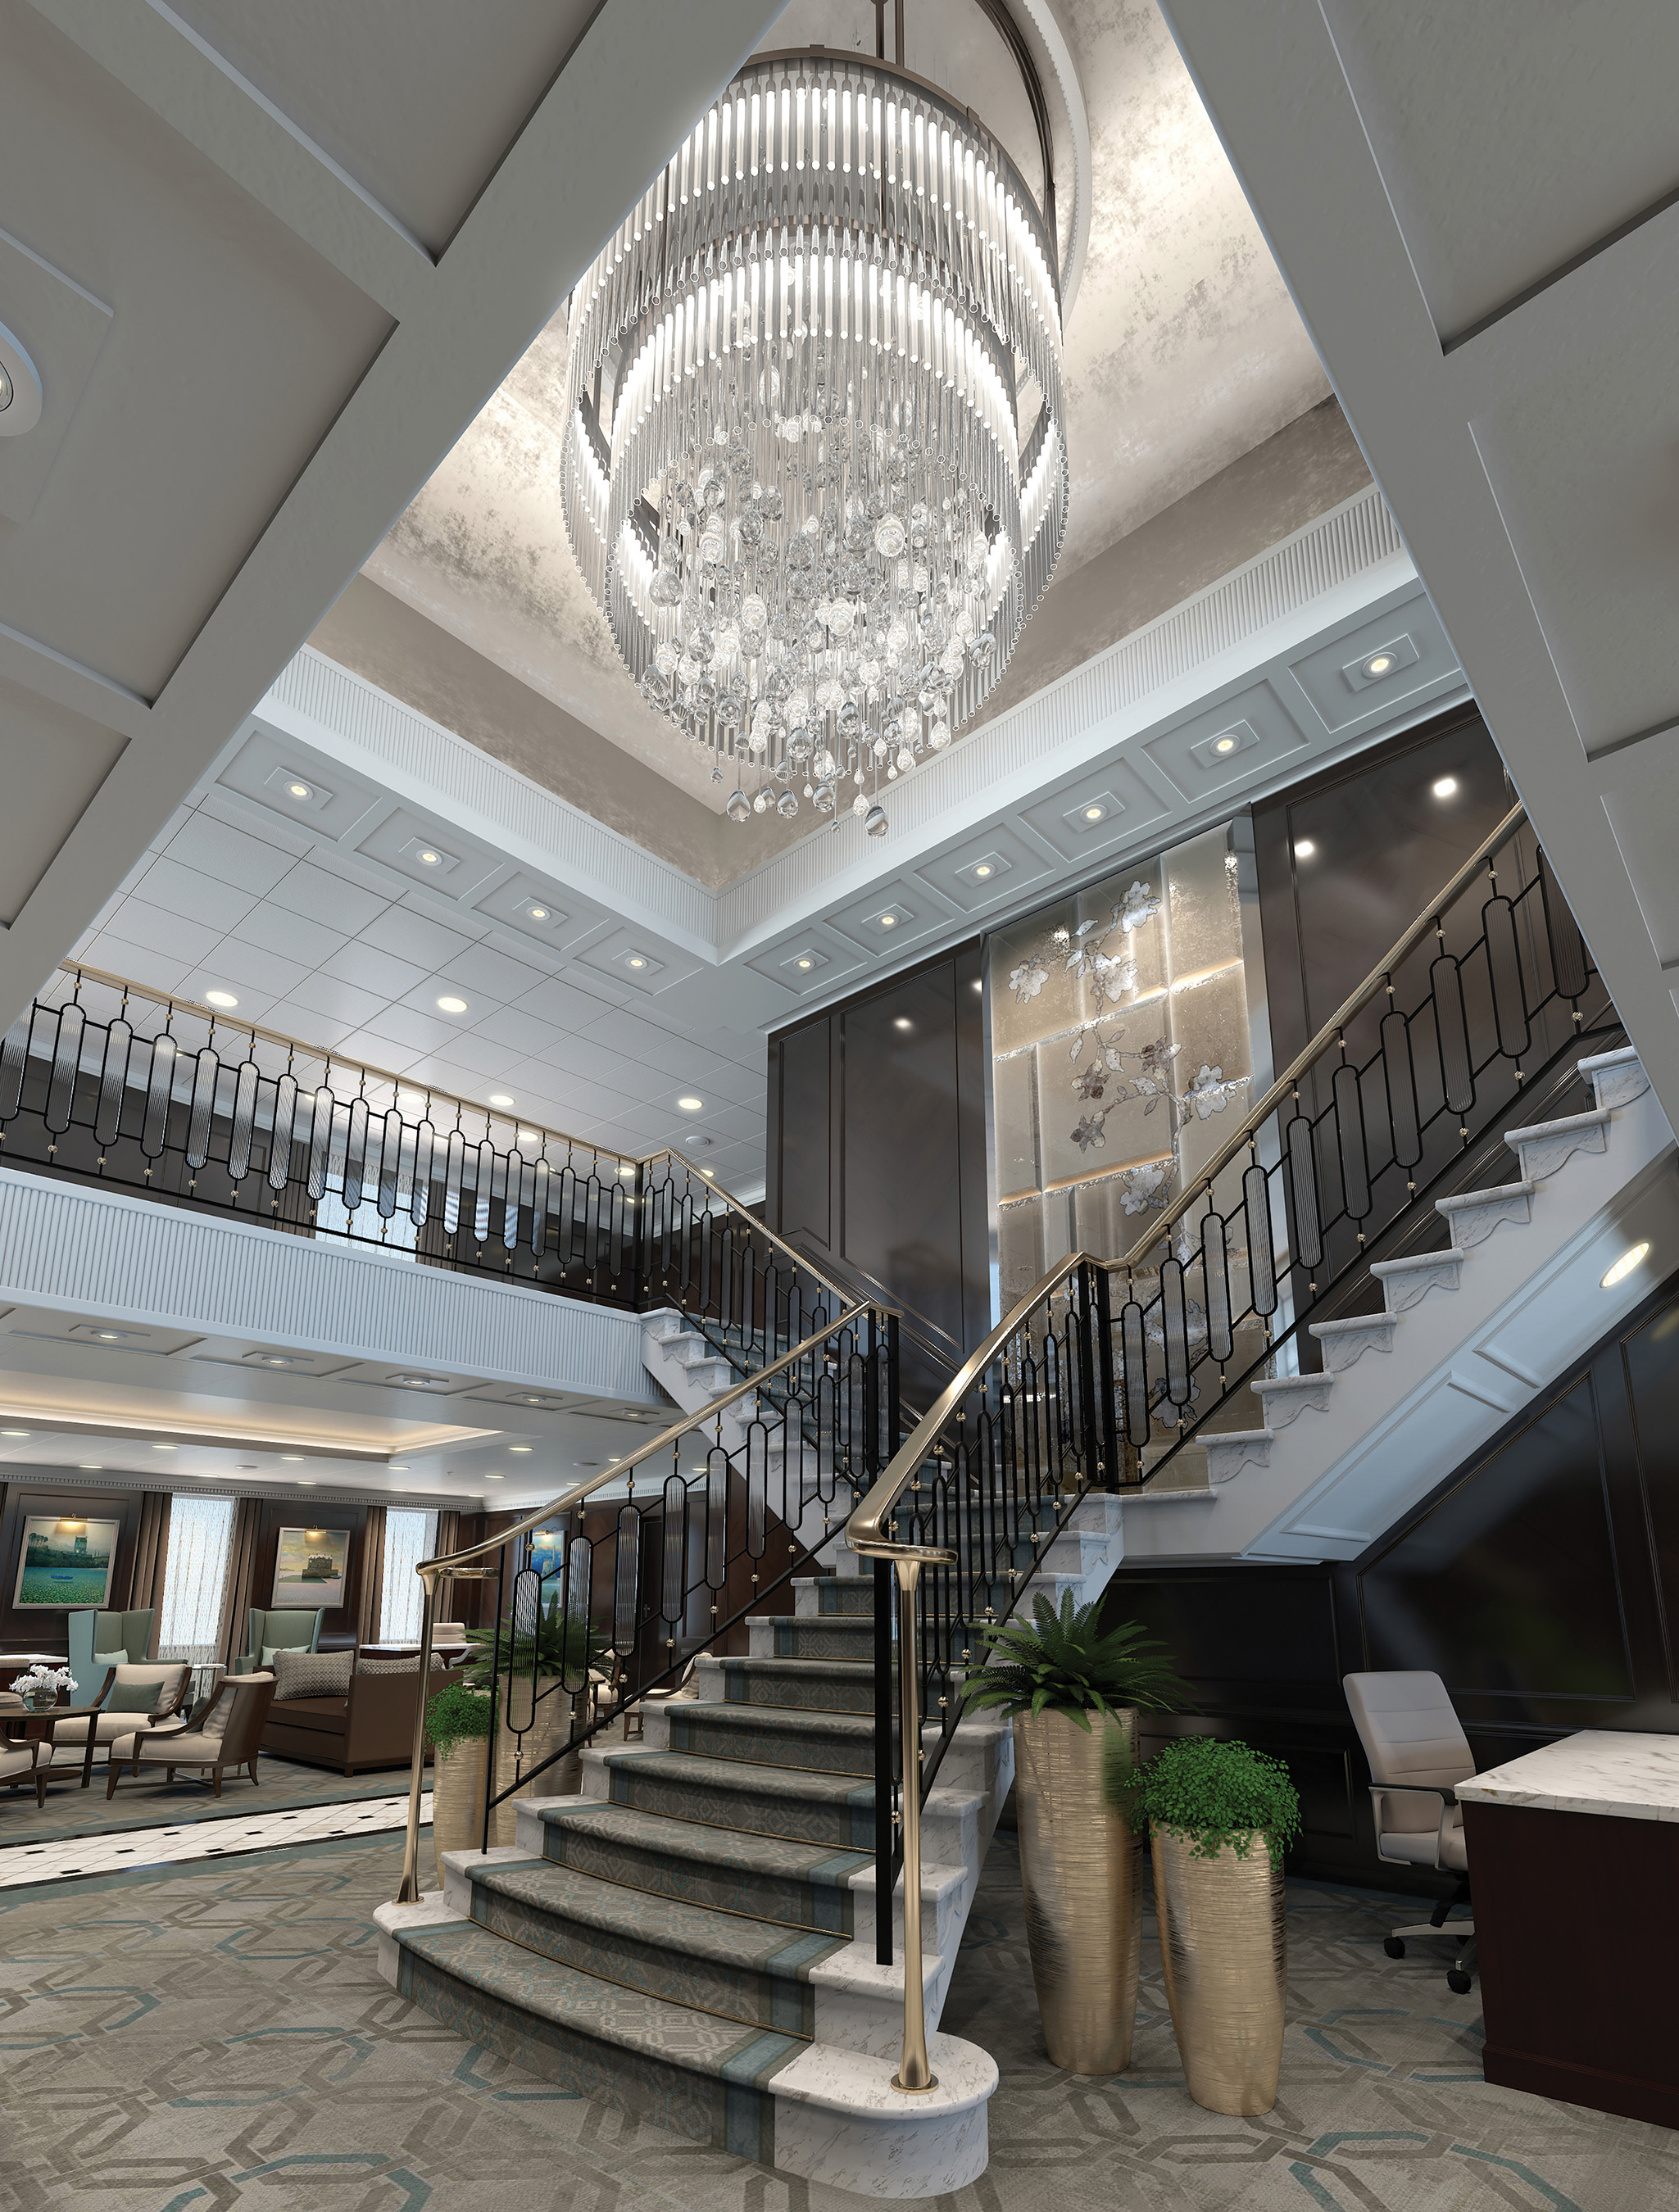 The Grand Staircase of the reimagined Regatta-Class ships